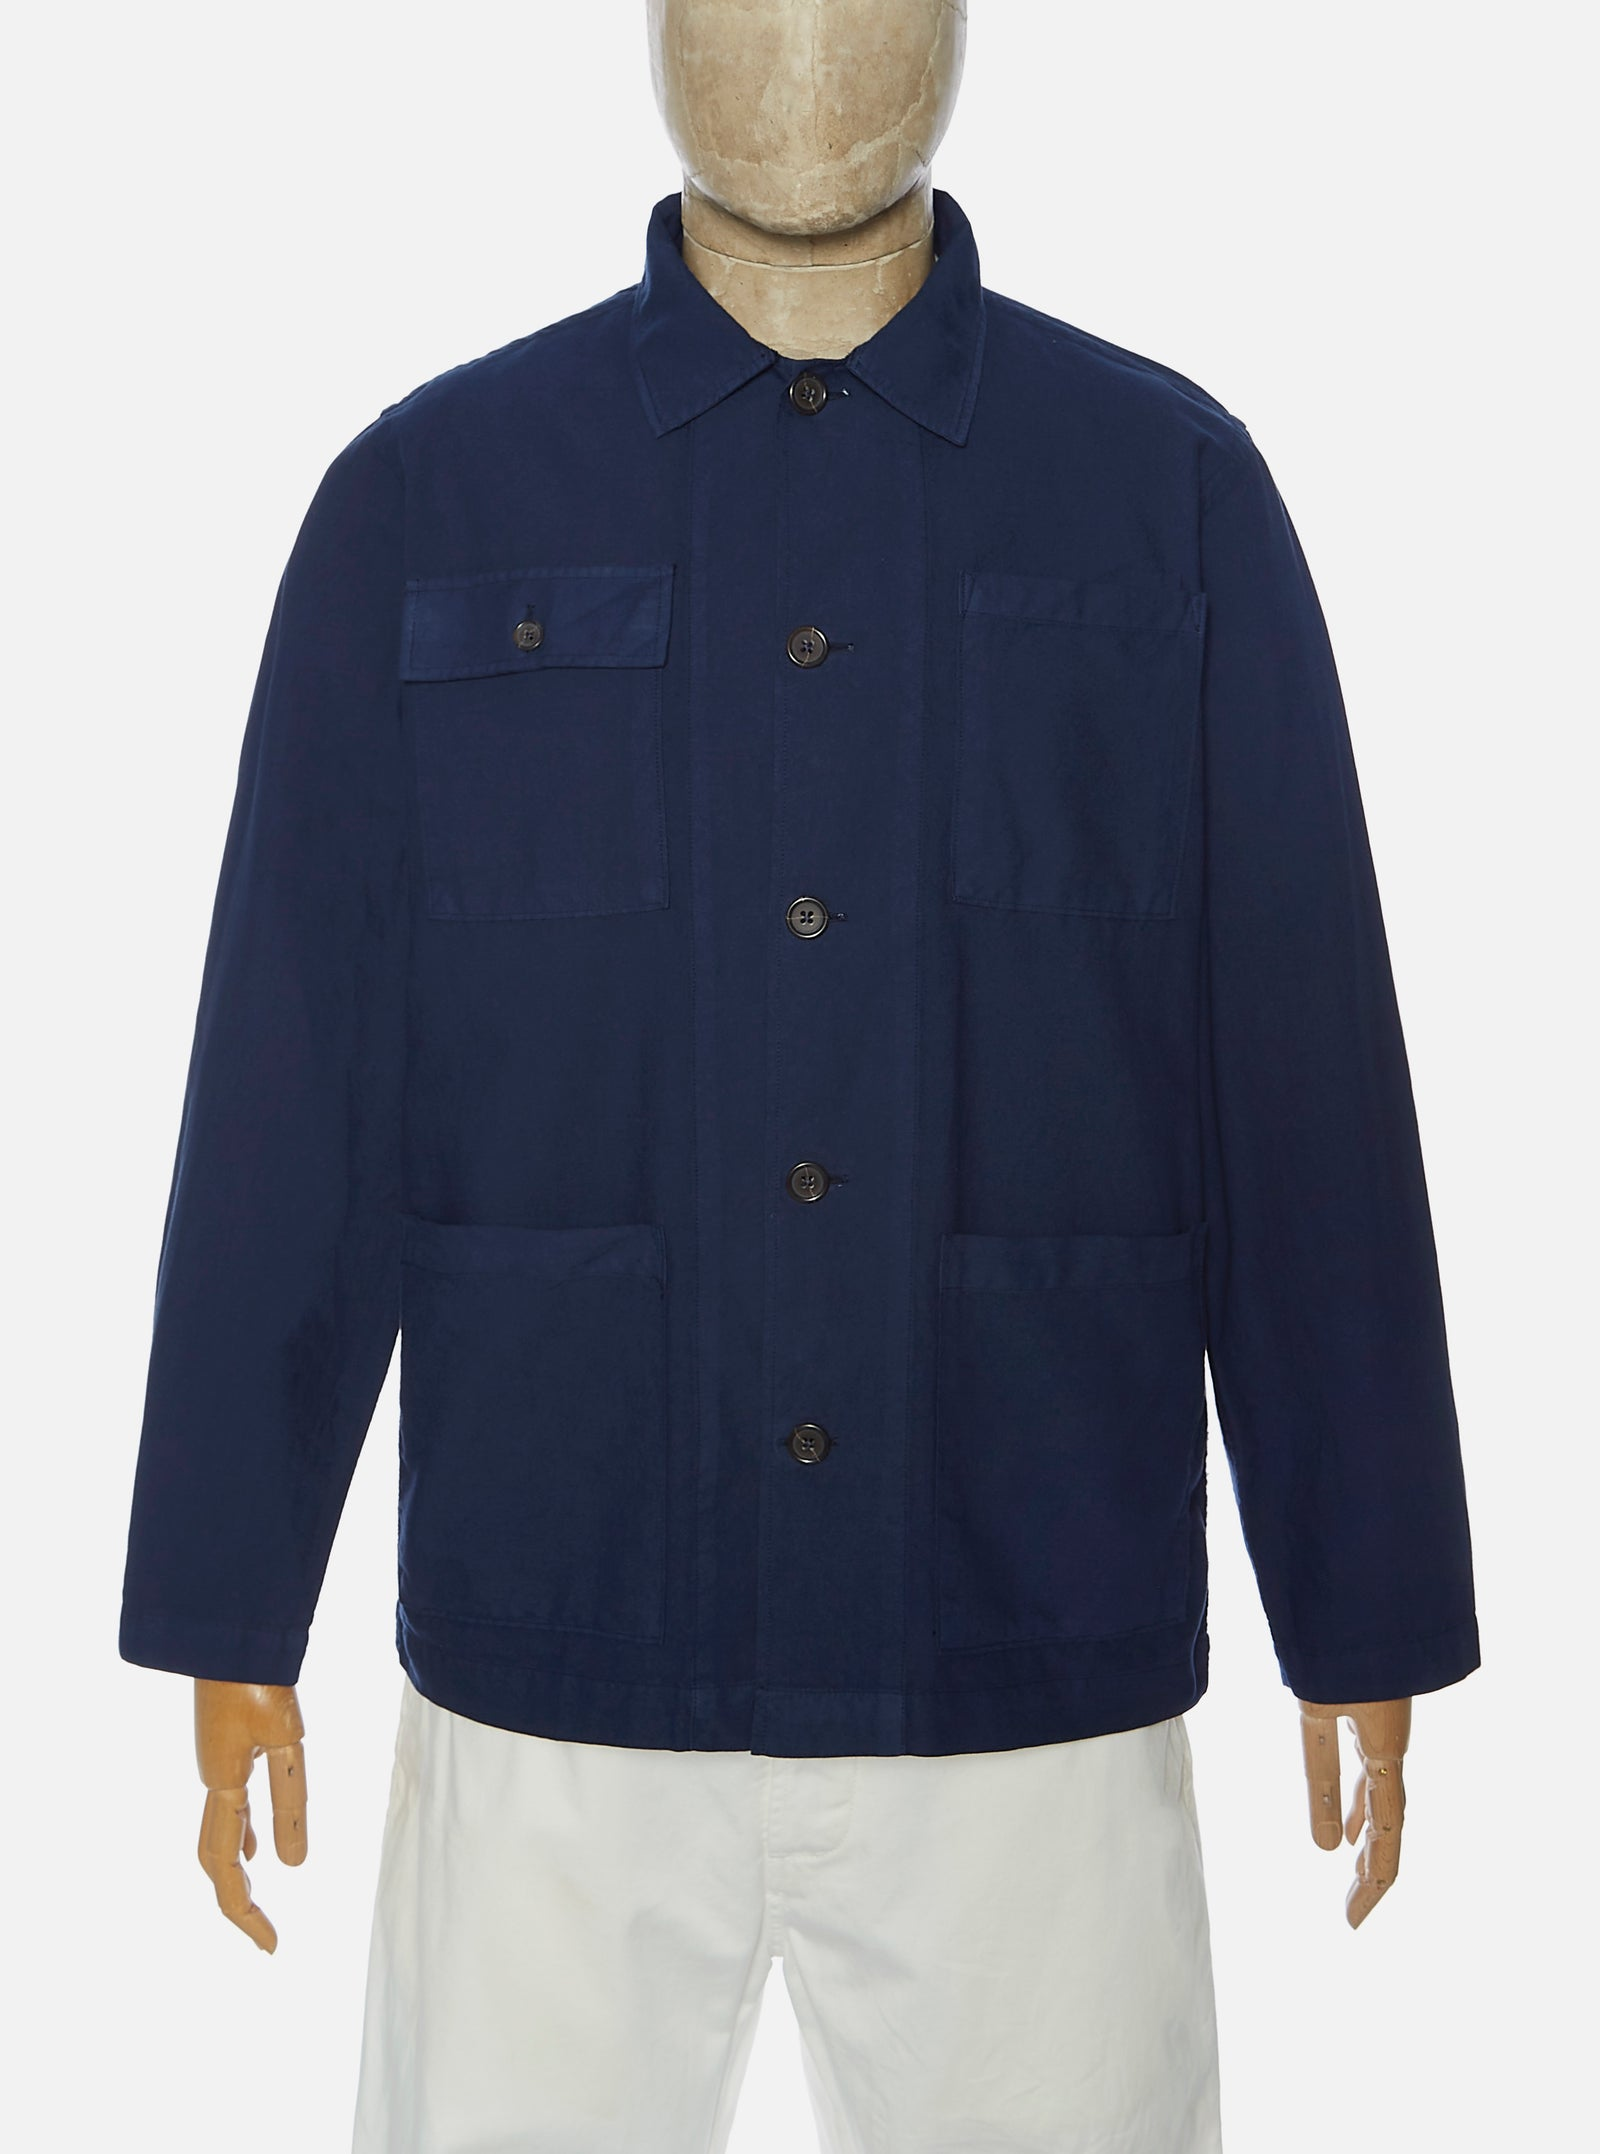 Universal Works Dockside Overshirt in Navy Oxford